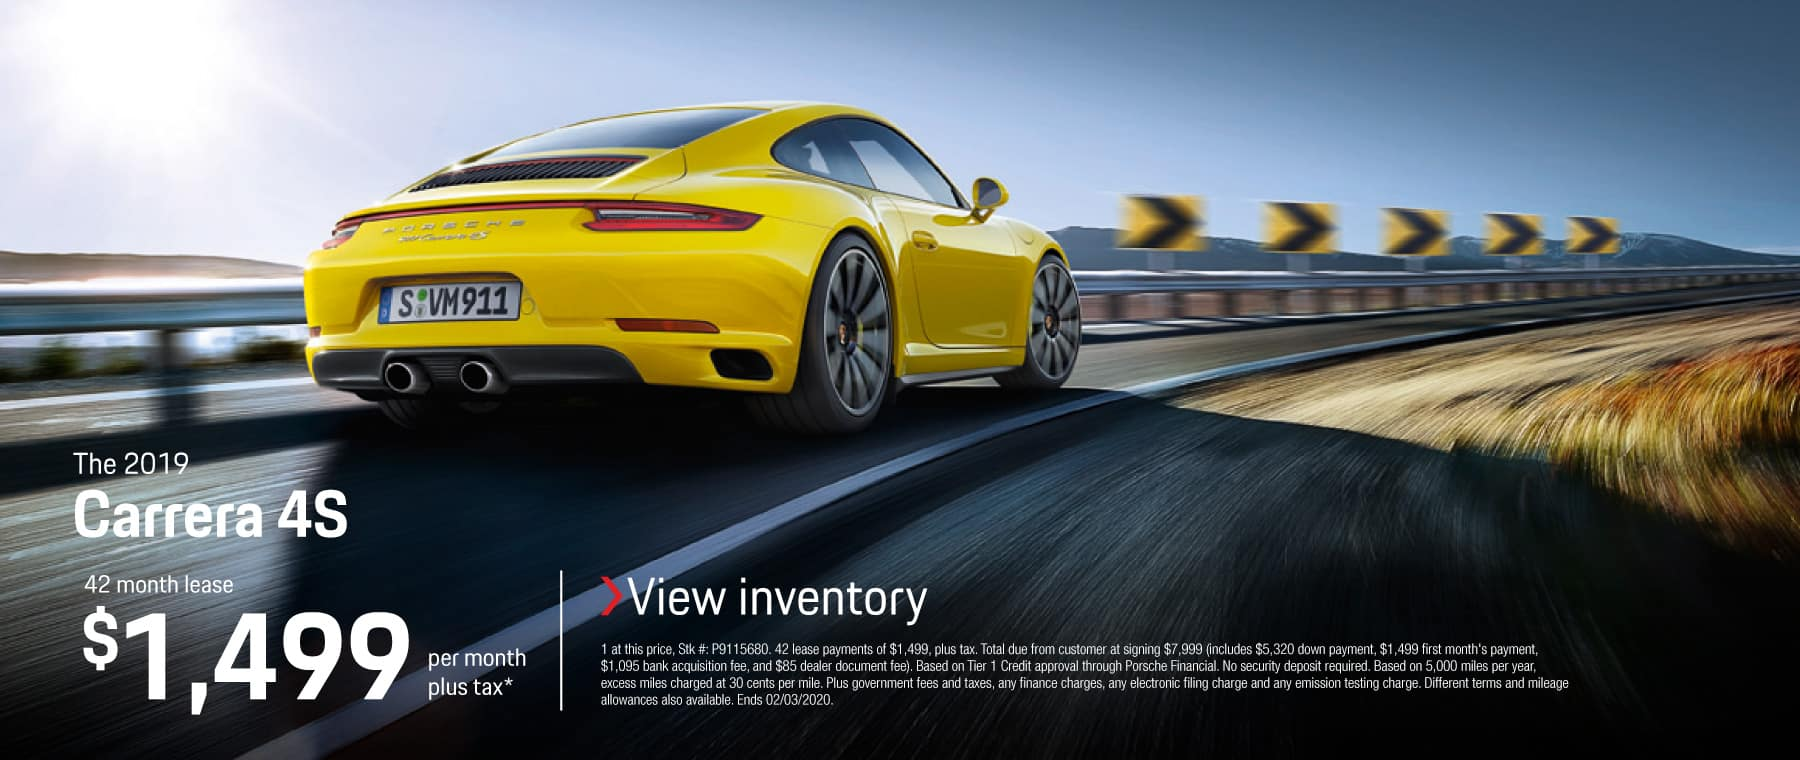 2019 CARRERA 4S LEASE 1499 / 42 MONTHS